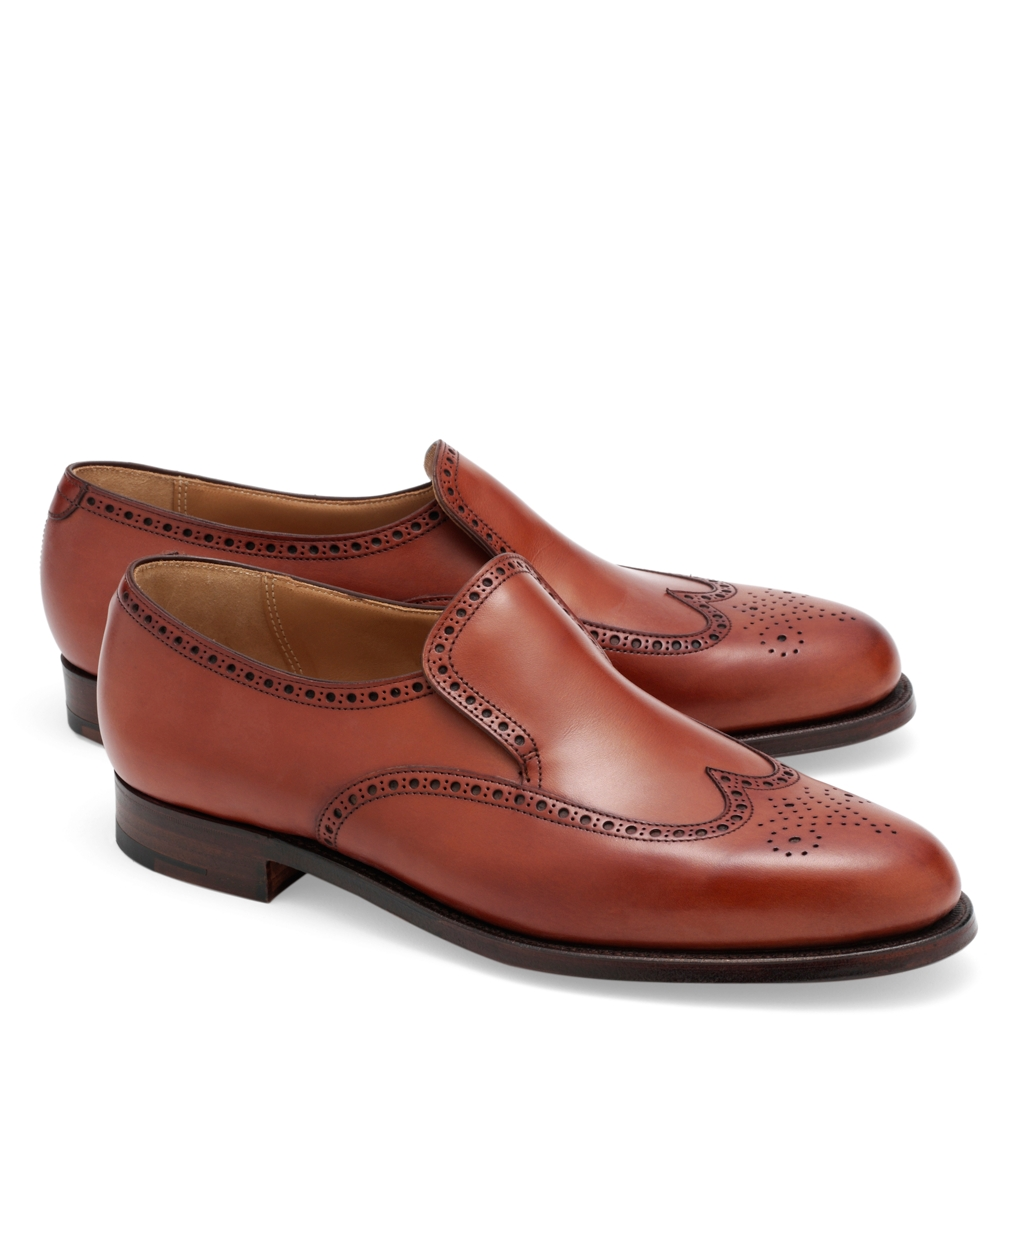 Brooks brothers Peal & Co.® Raywood in Brown for Men